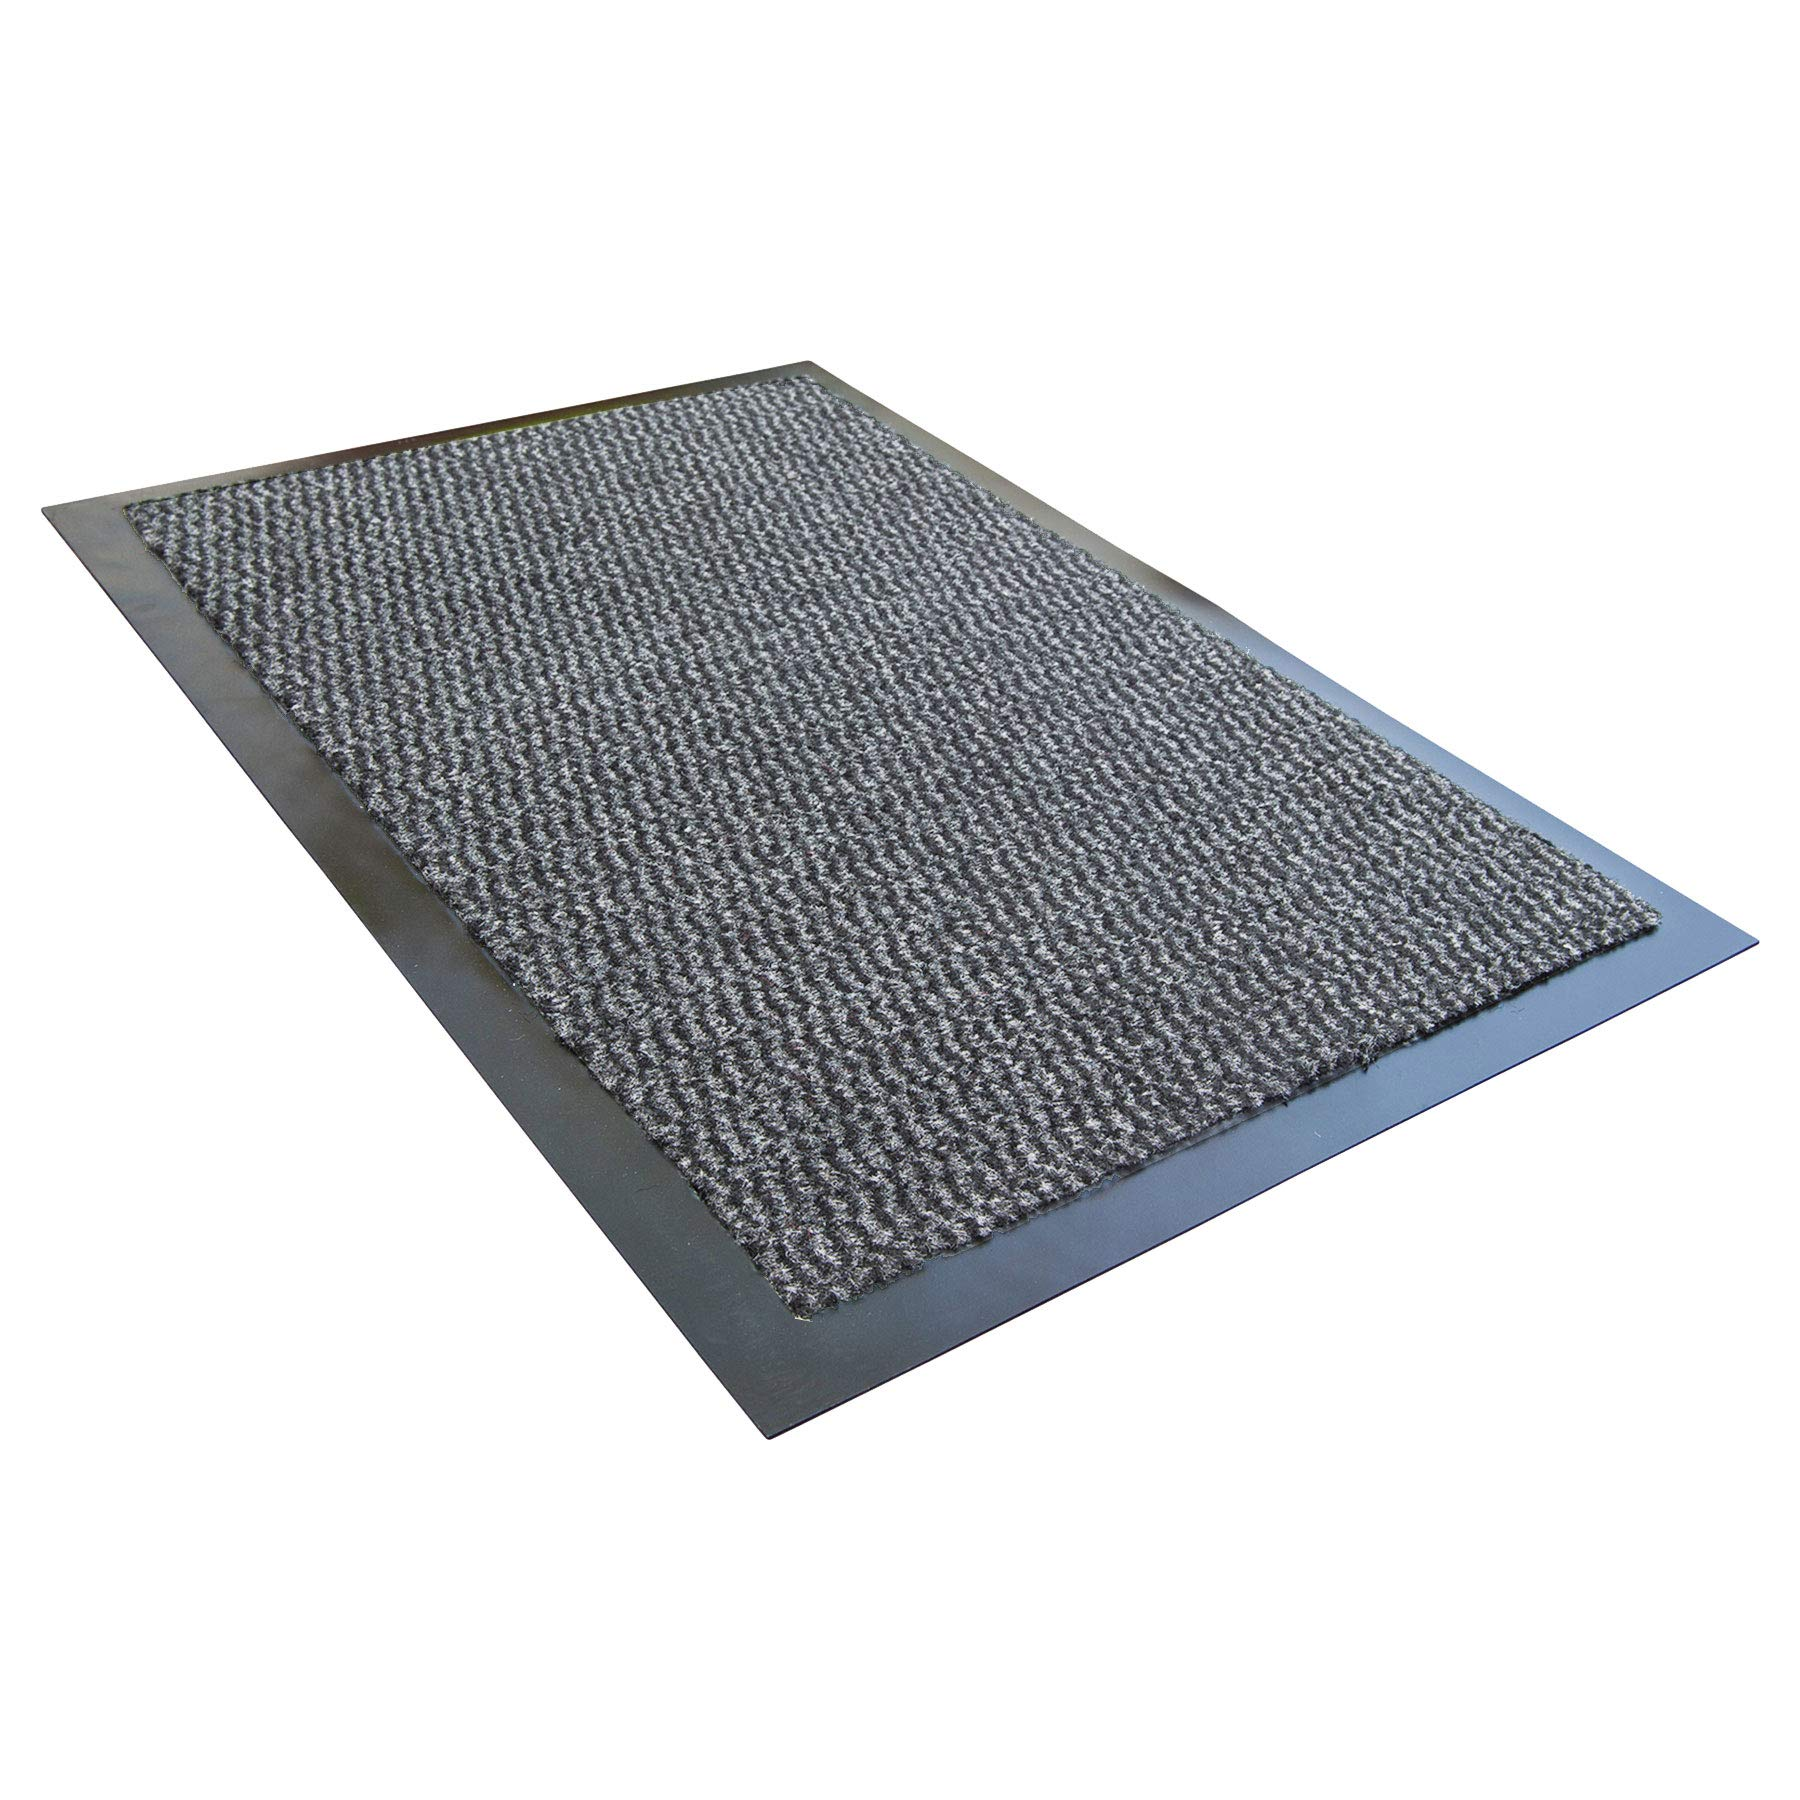 Ultralux Indoor Entrance Mat | 24'' x 35'' | Polypropylene Fibers and Anti-Slip Vinyl Backed Entry Rug Doormat | Gray | Home or Office Use | Multiple Sizes by Ultralux